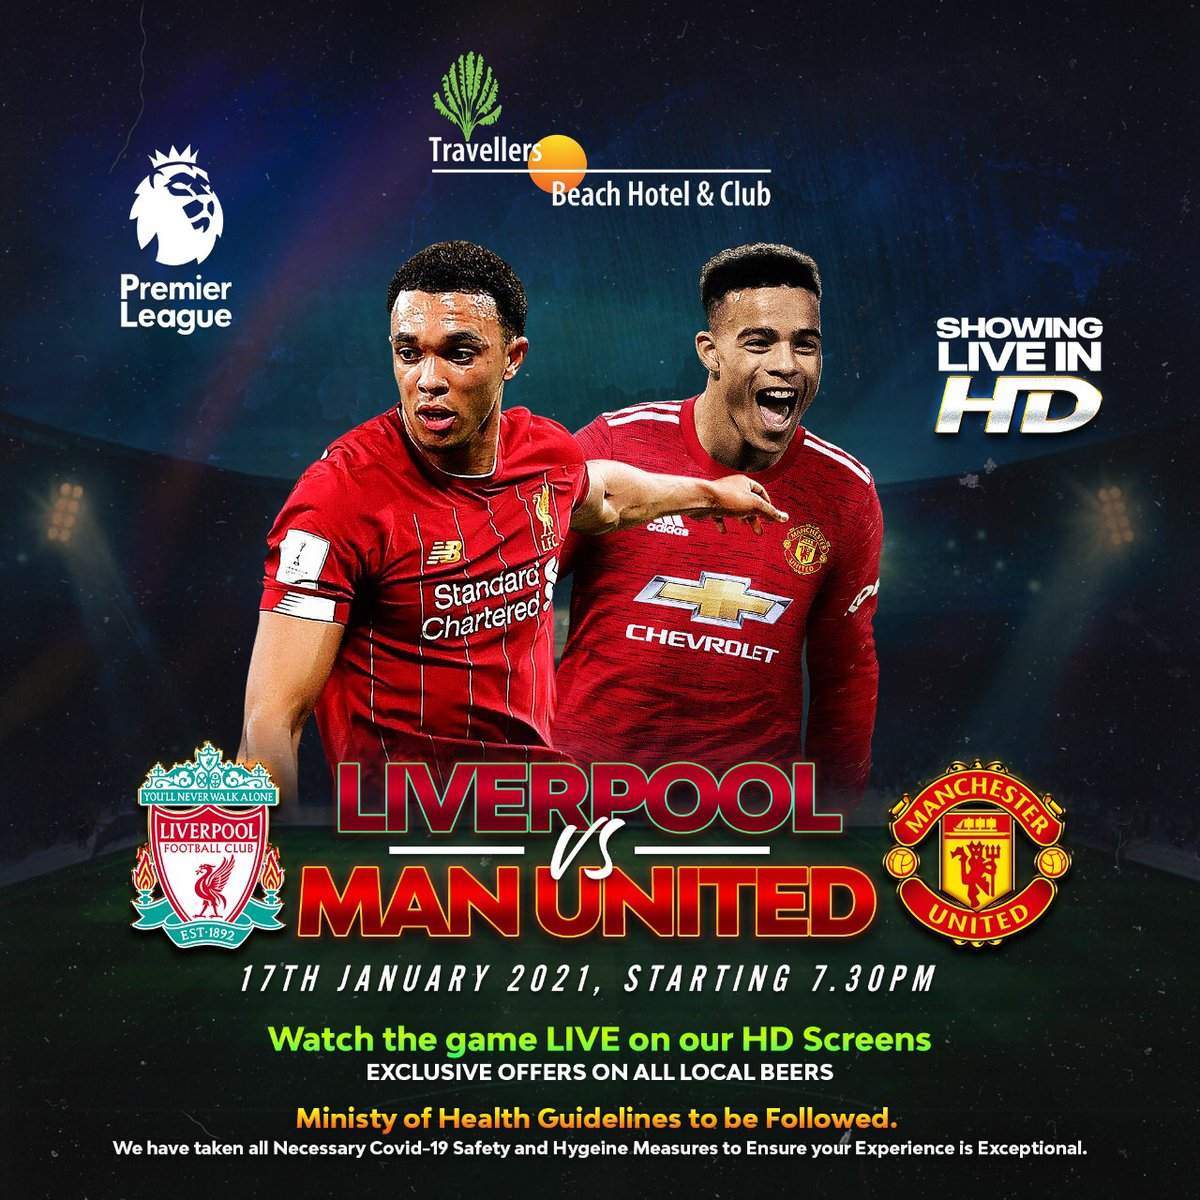 Who will take the 3 points home? Come watch the clash of the titans Live on our Hd screens today!  #MustBeTravellers #BarbecueWeekend #Football #Epl #FamilyTime #Holiday #BeachLife #Vacation #Resort #Fun #Music #Brunch #MagicalKenya #TembeaKenya #Mombasa #travel #LIVMUN